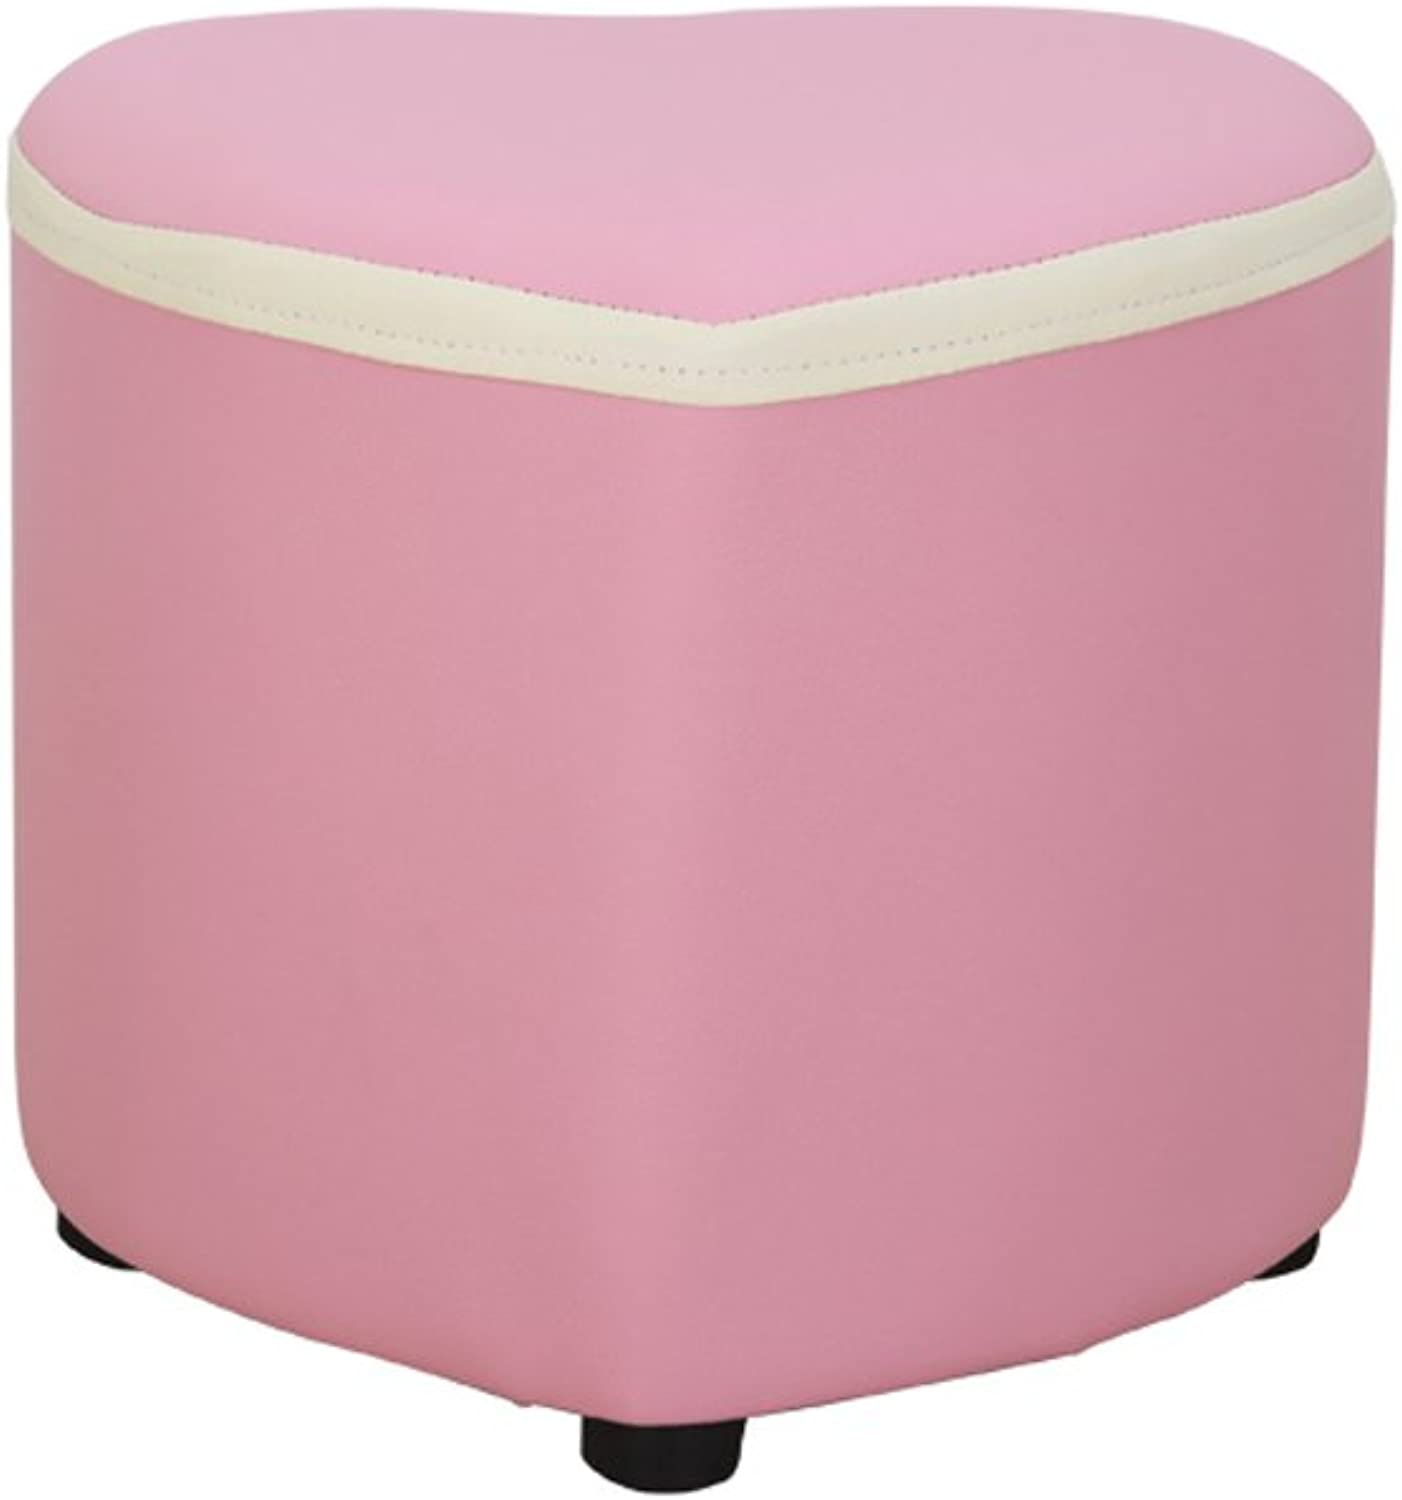 Stool Fashion for shoes Stool Creative Stool Solid Wood Bench Sofa Stool WENBO Home (color   Pink)